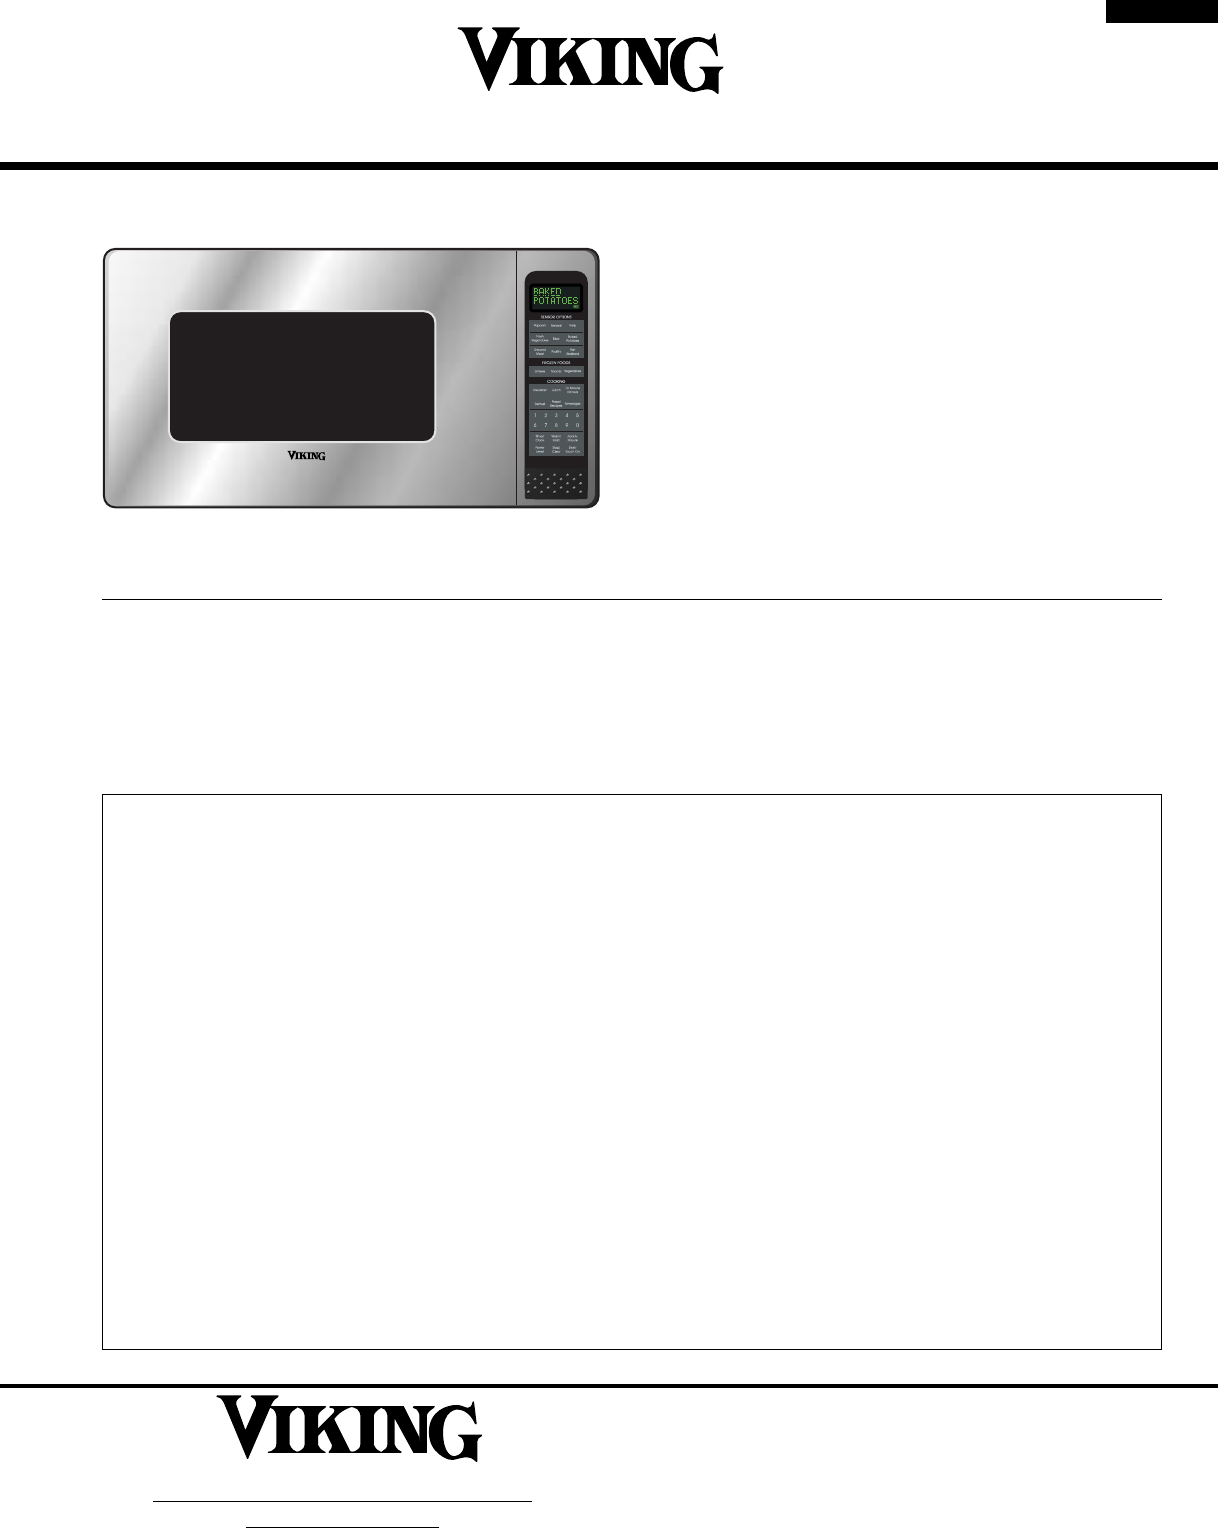 Viking Microwave Oven Vmos200 User Guide Manualsonline